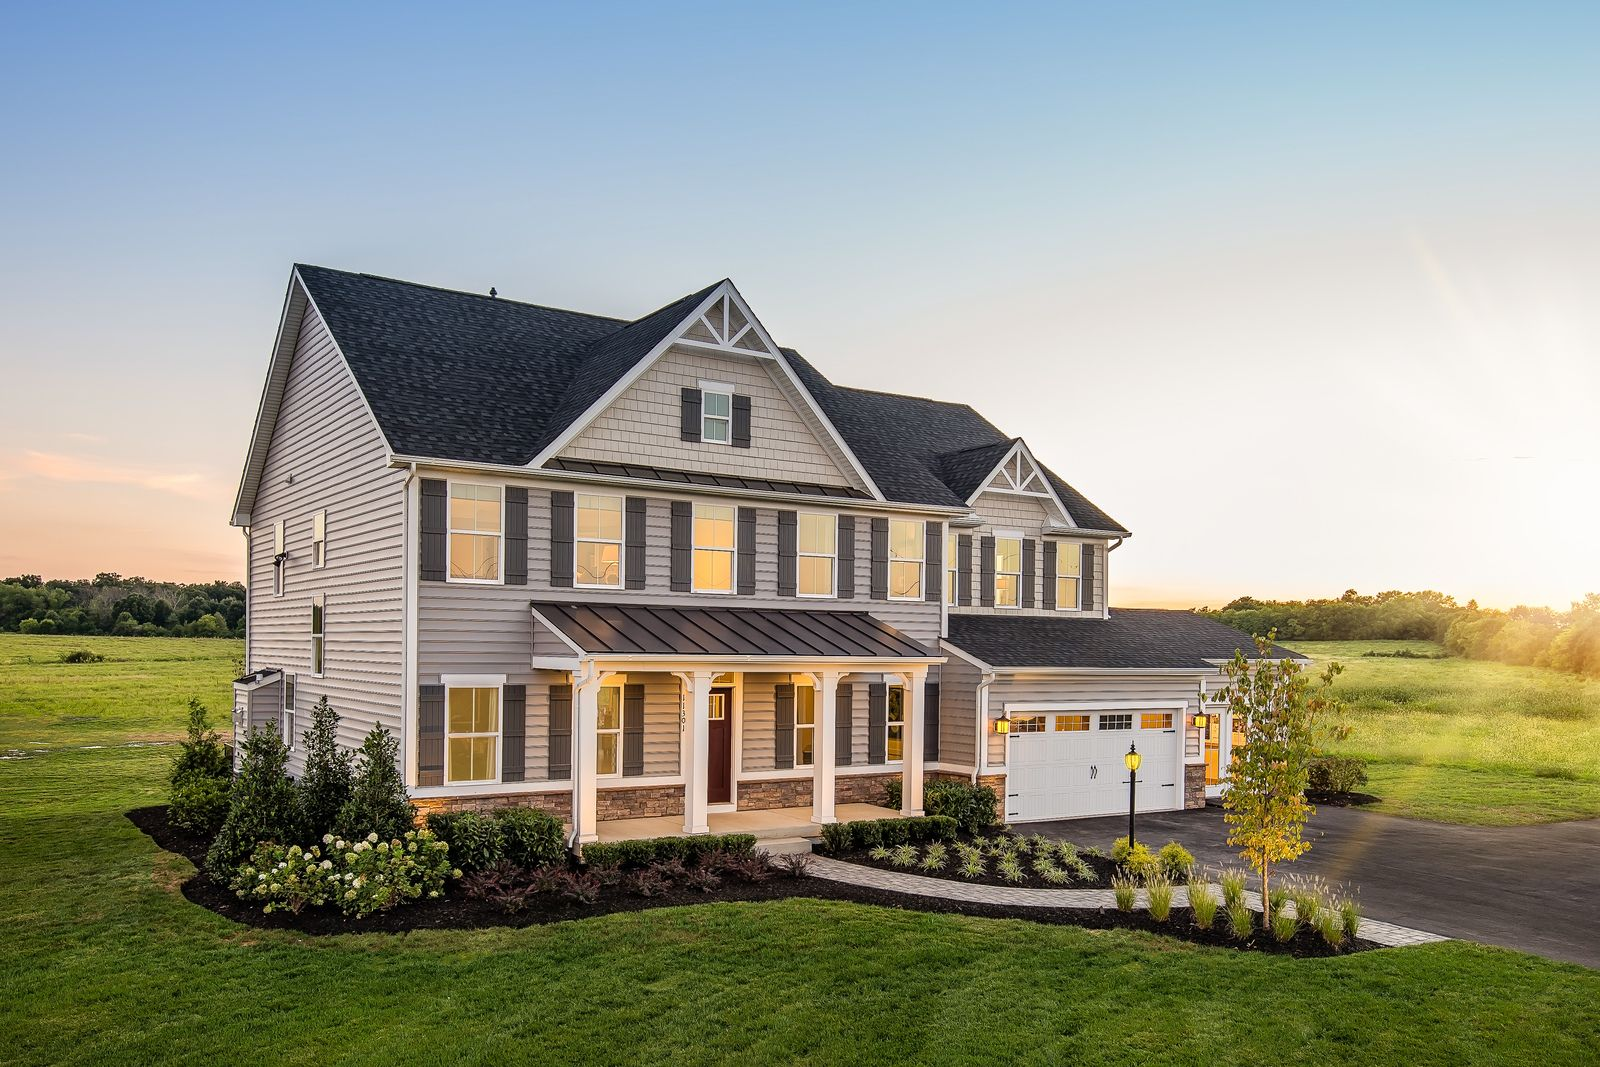 Single Family for Active at Warrenton Chase - Normandy 7807 Warrenton Chase Drive Warrenton, Virginia 20187 United States